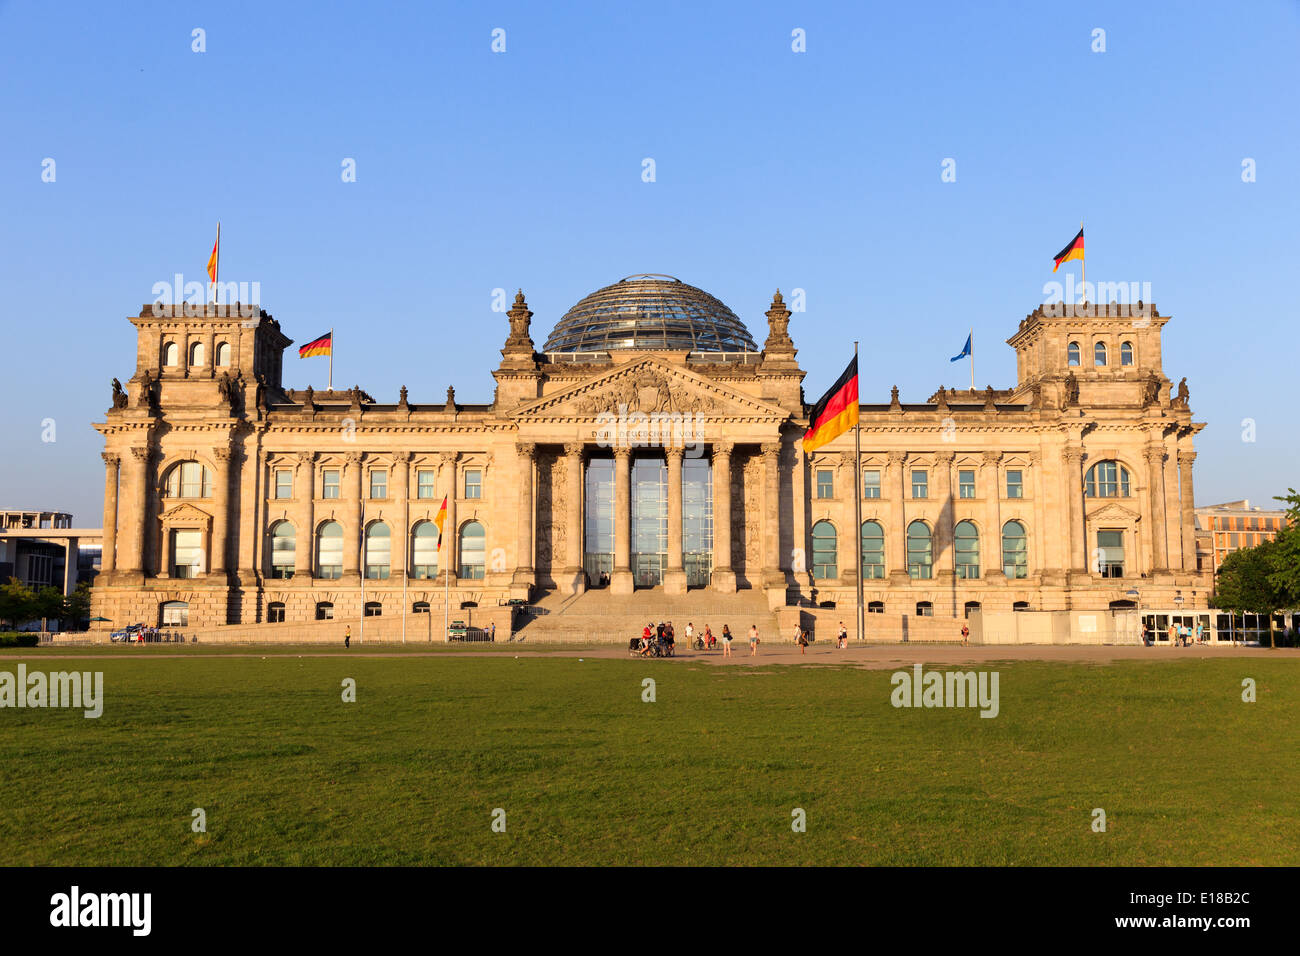 The Reichstag building in Berlin: German parliament - Stock Image